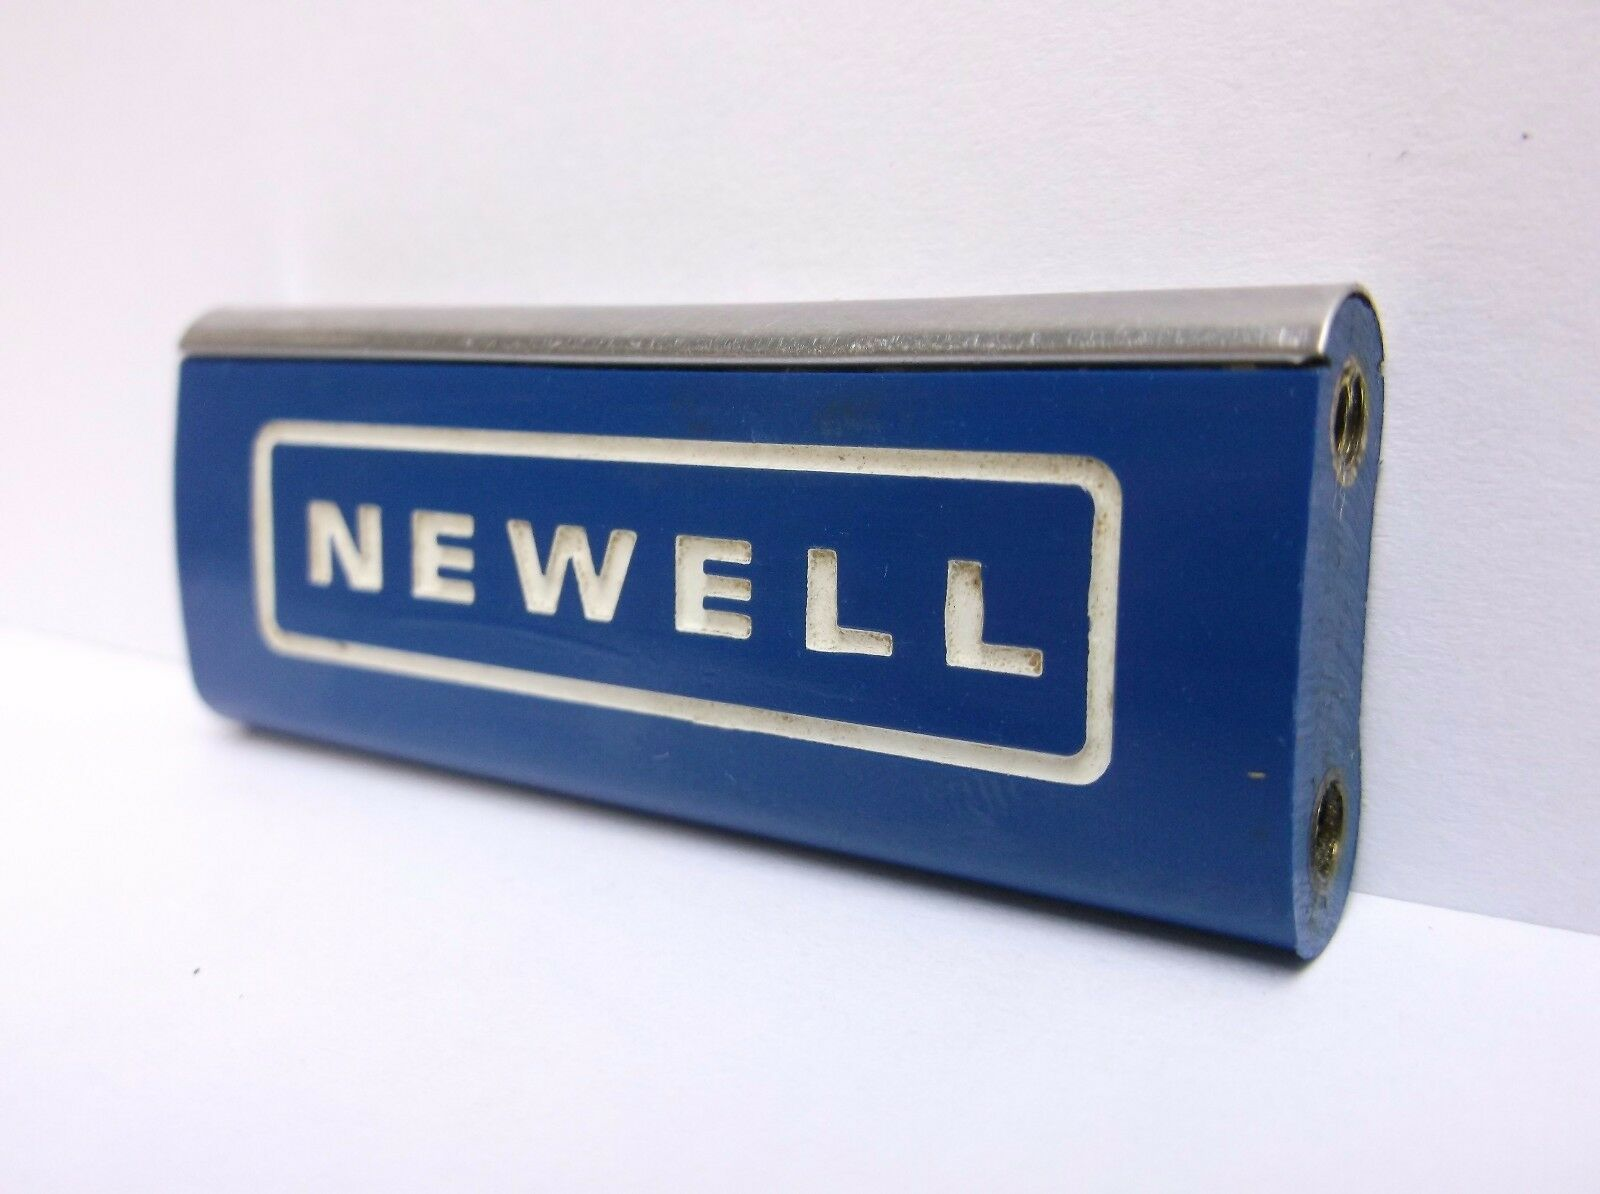 USED NEWELL CONVENTIONAL REEL PART - 229 5 blueE - Spacer Bar  B